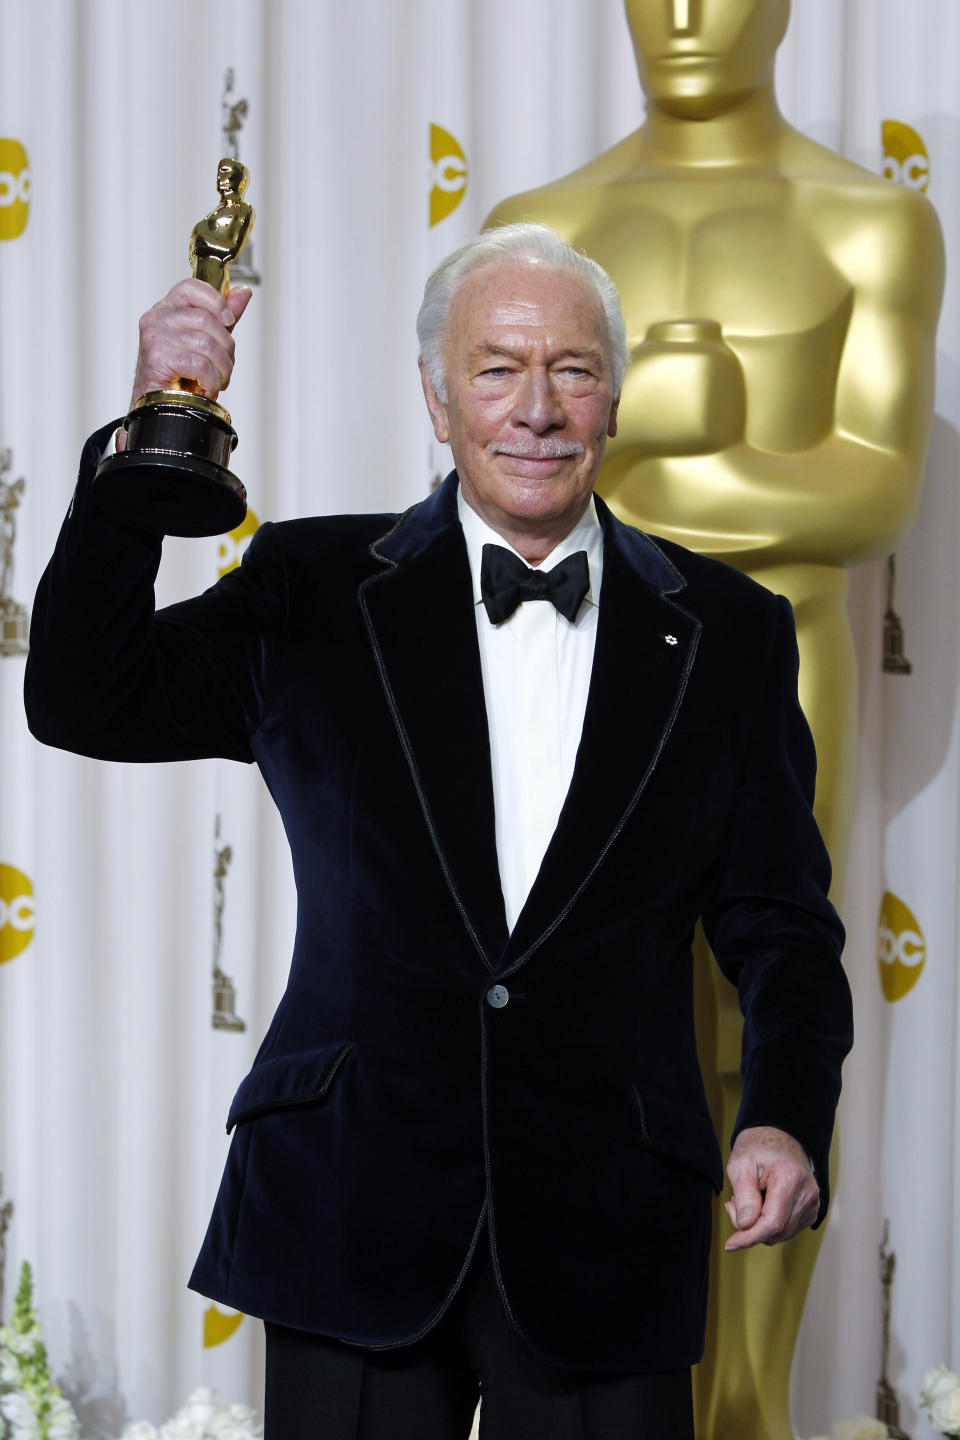 """FILE - Christopher Plummer poses with the Oscar for best supporting actor for his work in """"Beginners"""" during the 84th Academy Awards on Feb. 26, 2012, in the Hollywood section of Los Angeles. Plummer, the dashing award-winning actor who played Captain von Trapp in the film """"The Sound of Music"""" and at 82 became the oldest Academy Award winner in history, has died. He was 91. Plummer died Friday morning, Feb. 5, 2021, at his home in Connecticut with his wife, Elaine Taylor, by his side, said Lou Pitt, his longtime friend and manager. (AP Photo/Joel Ryan, File)"""